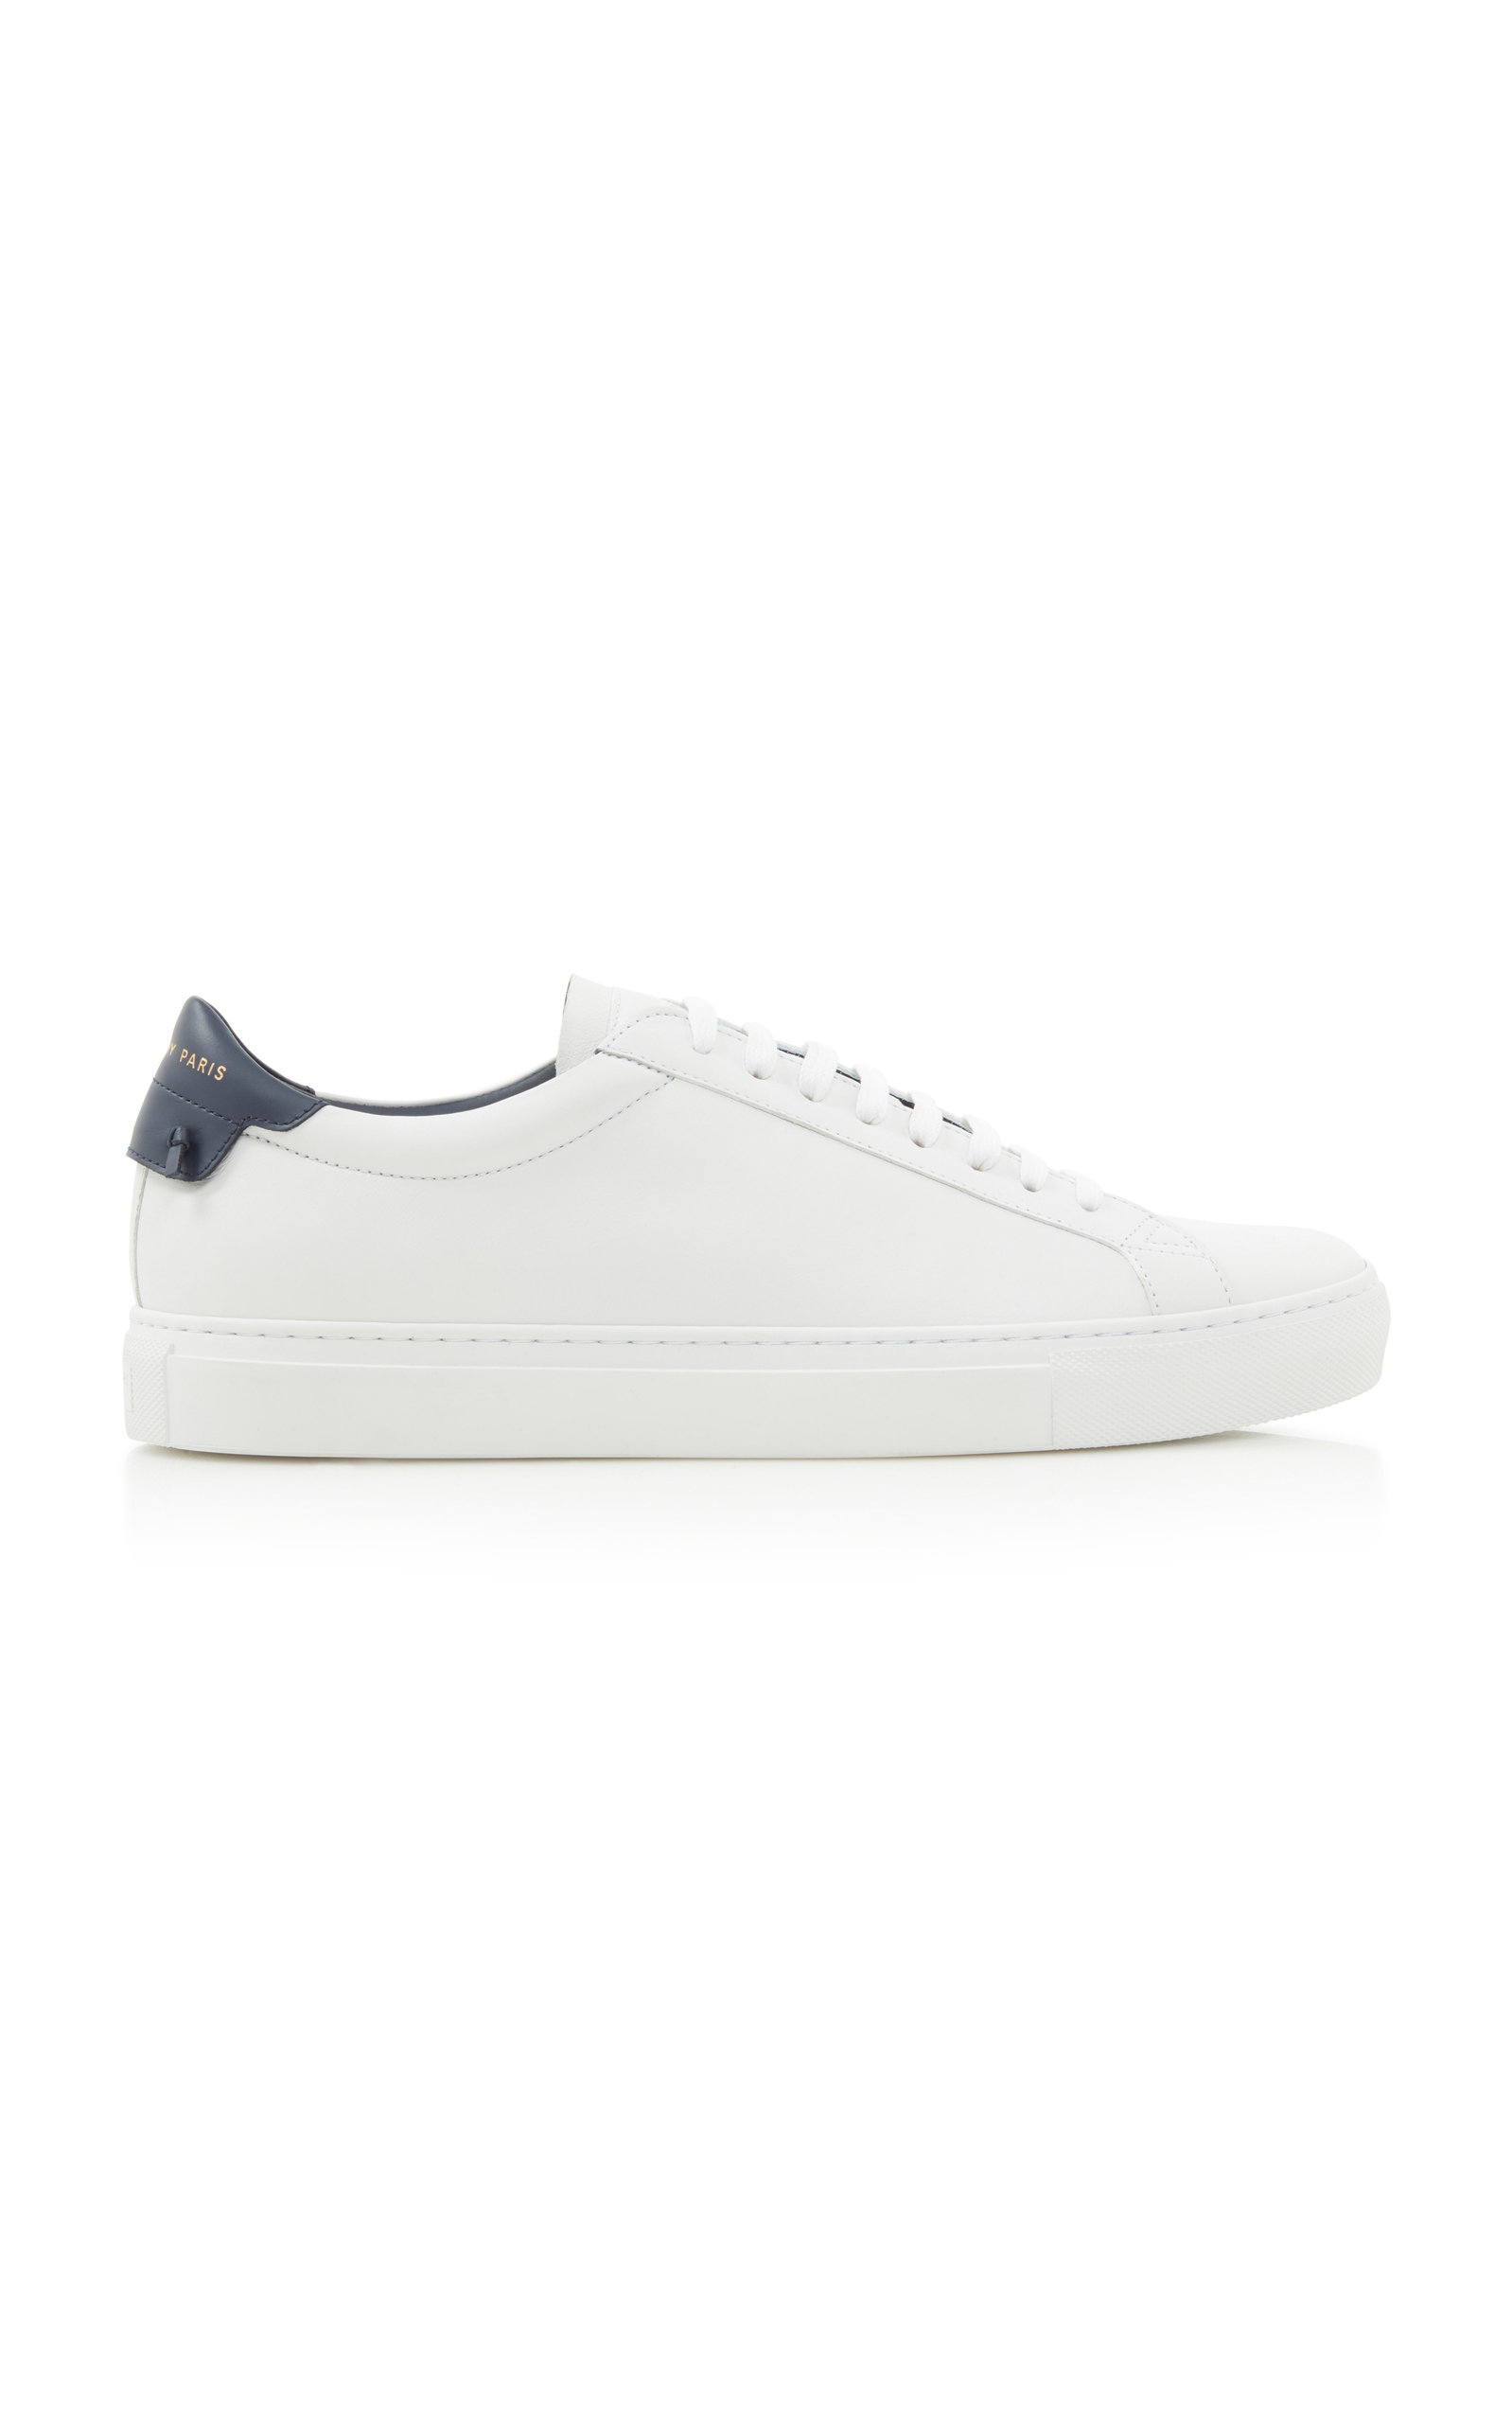 Givenchy Urban Street Low-top Leather